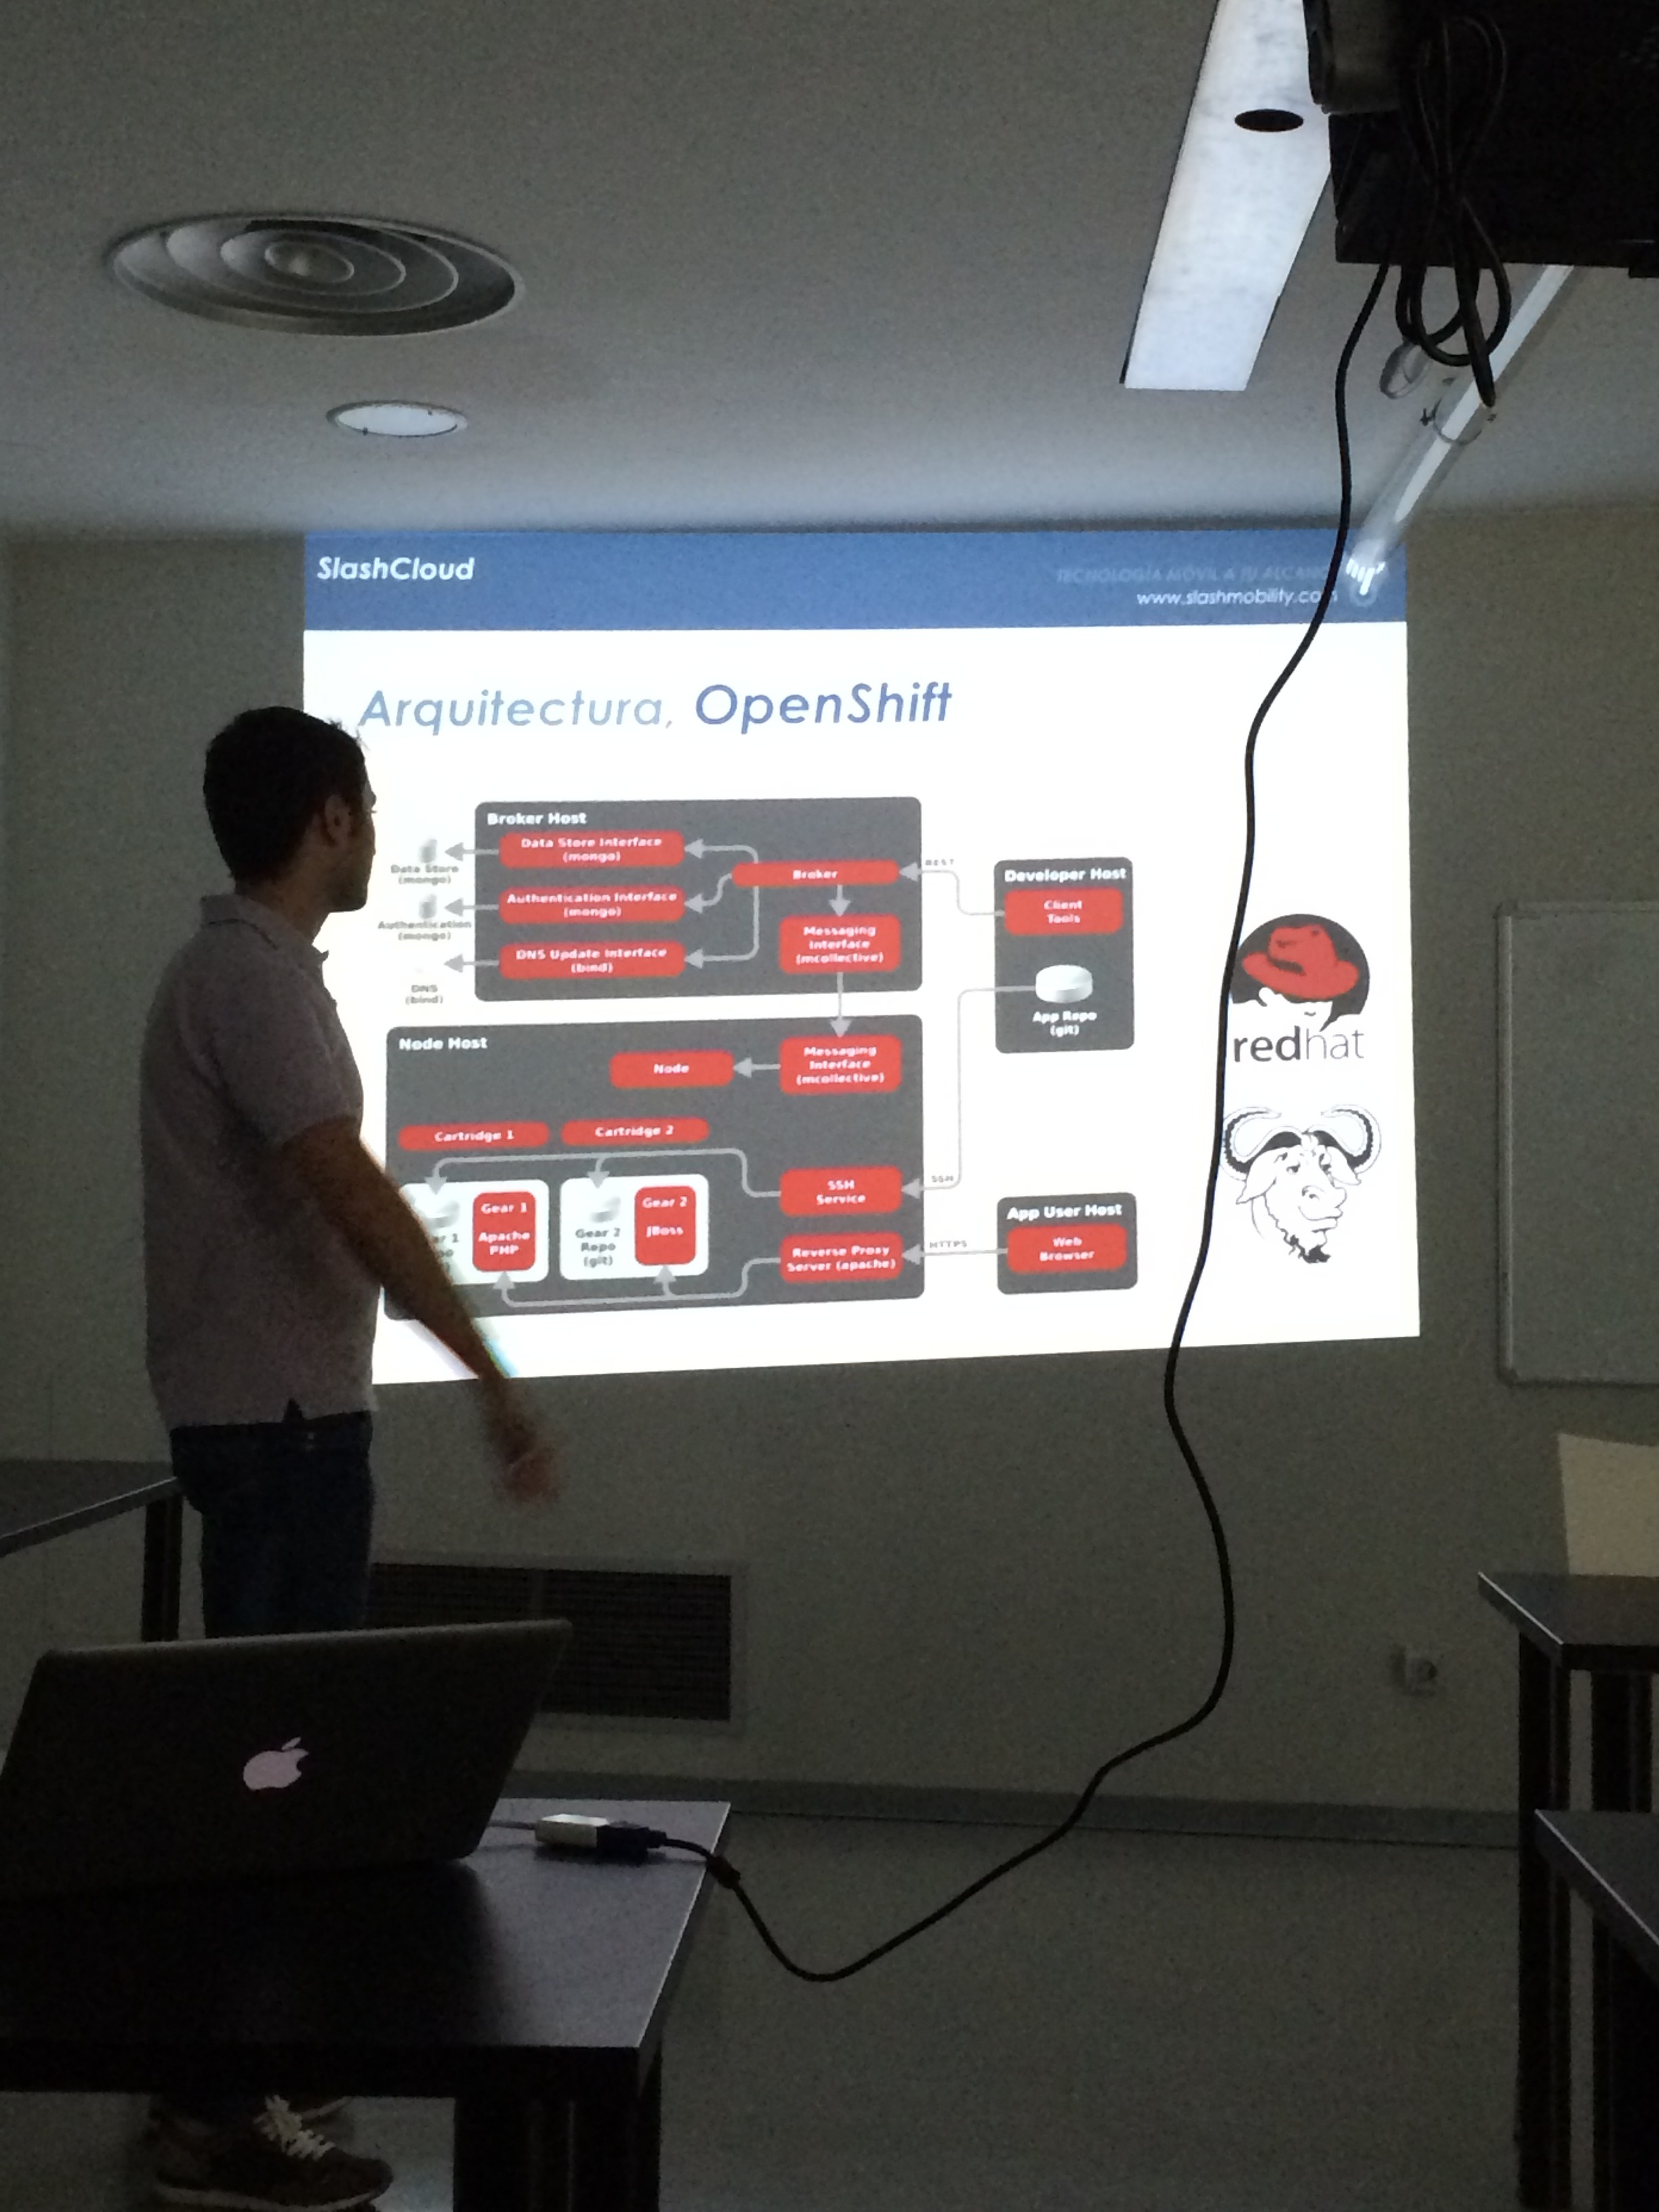 Ventajas y desventajas del Cloud Computing en la SlashFriday